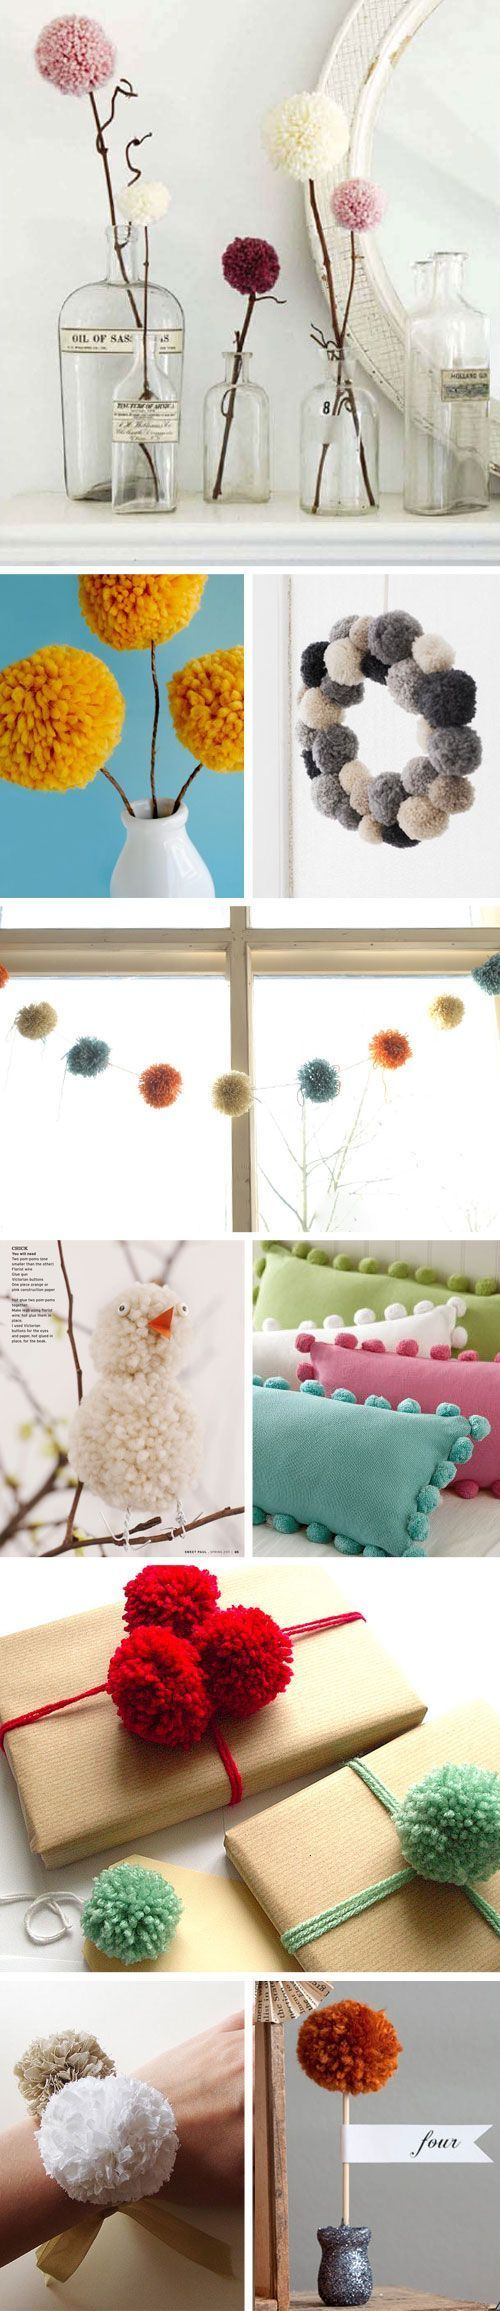 The Homemade Haven Loves these pom pom ideas. Home decor, party or wedding decoration ideas.